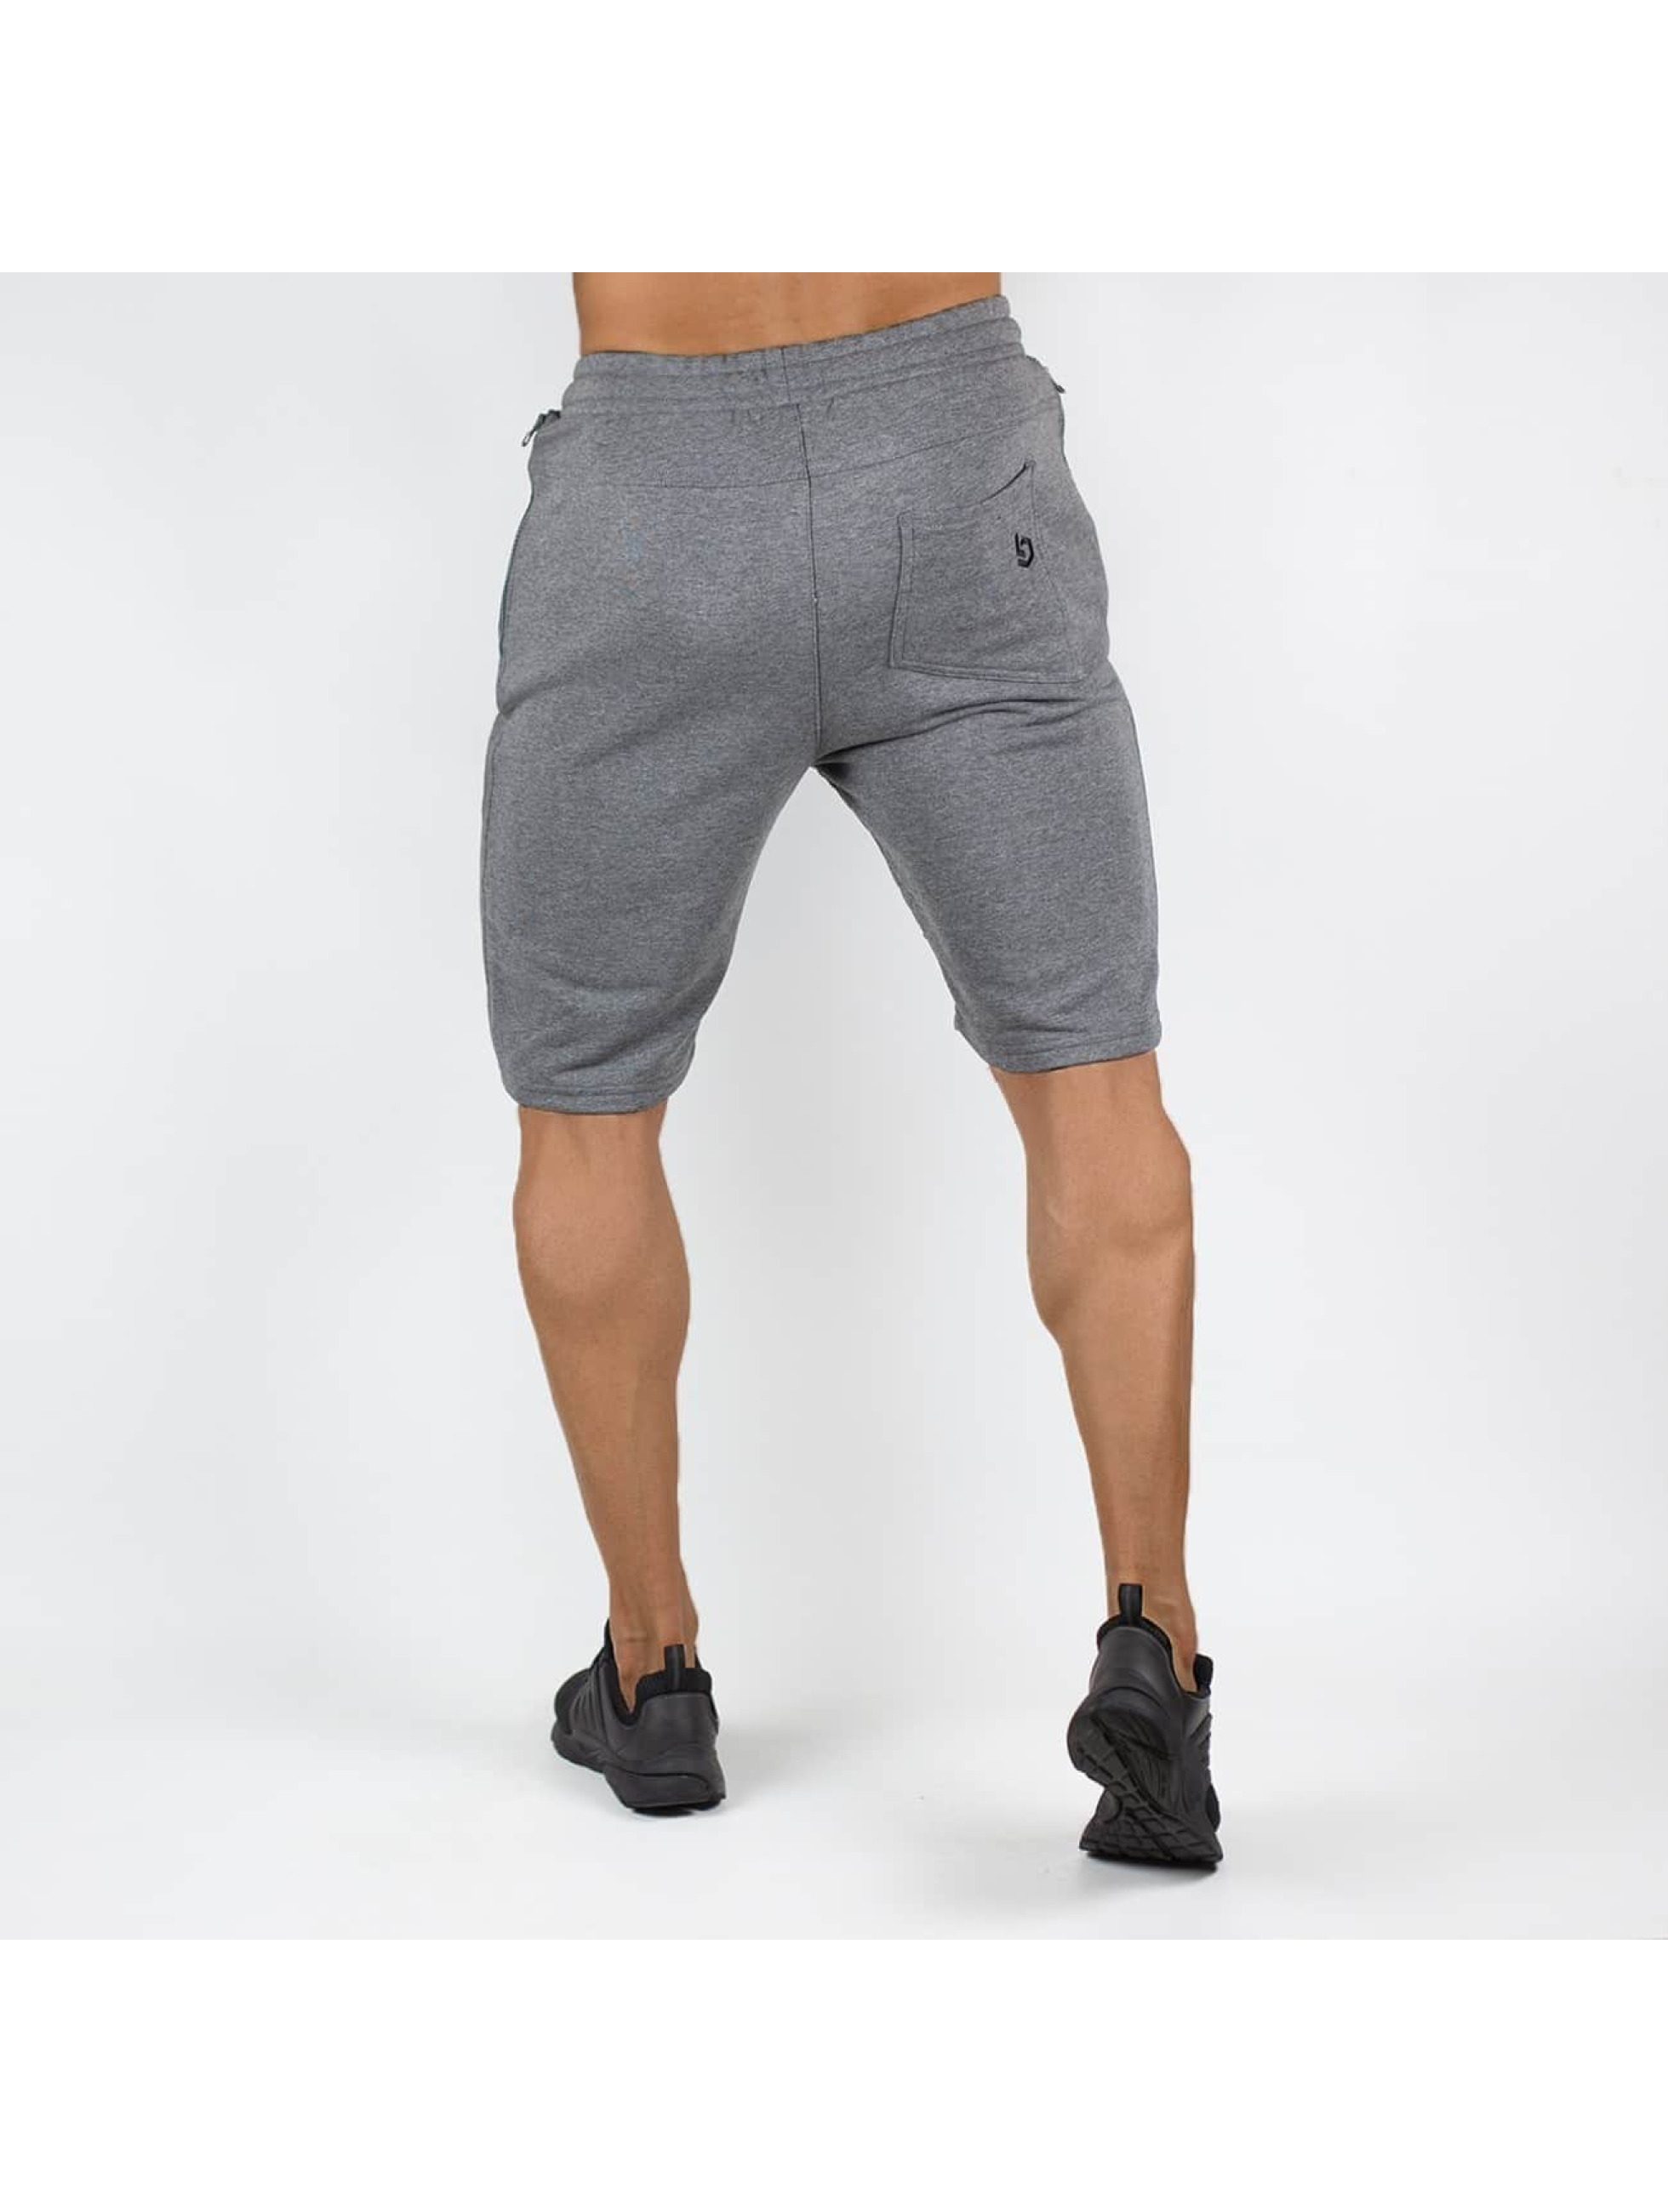 Beyond Limits shorts Baseline grijs